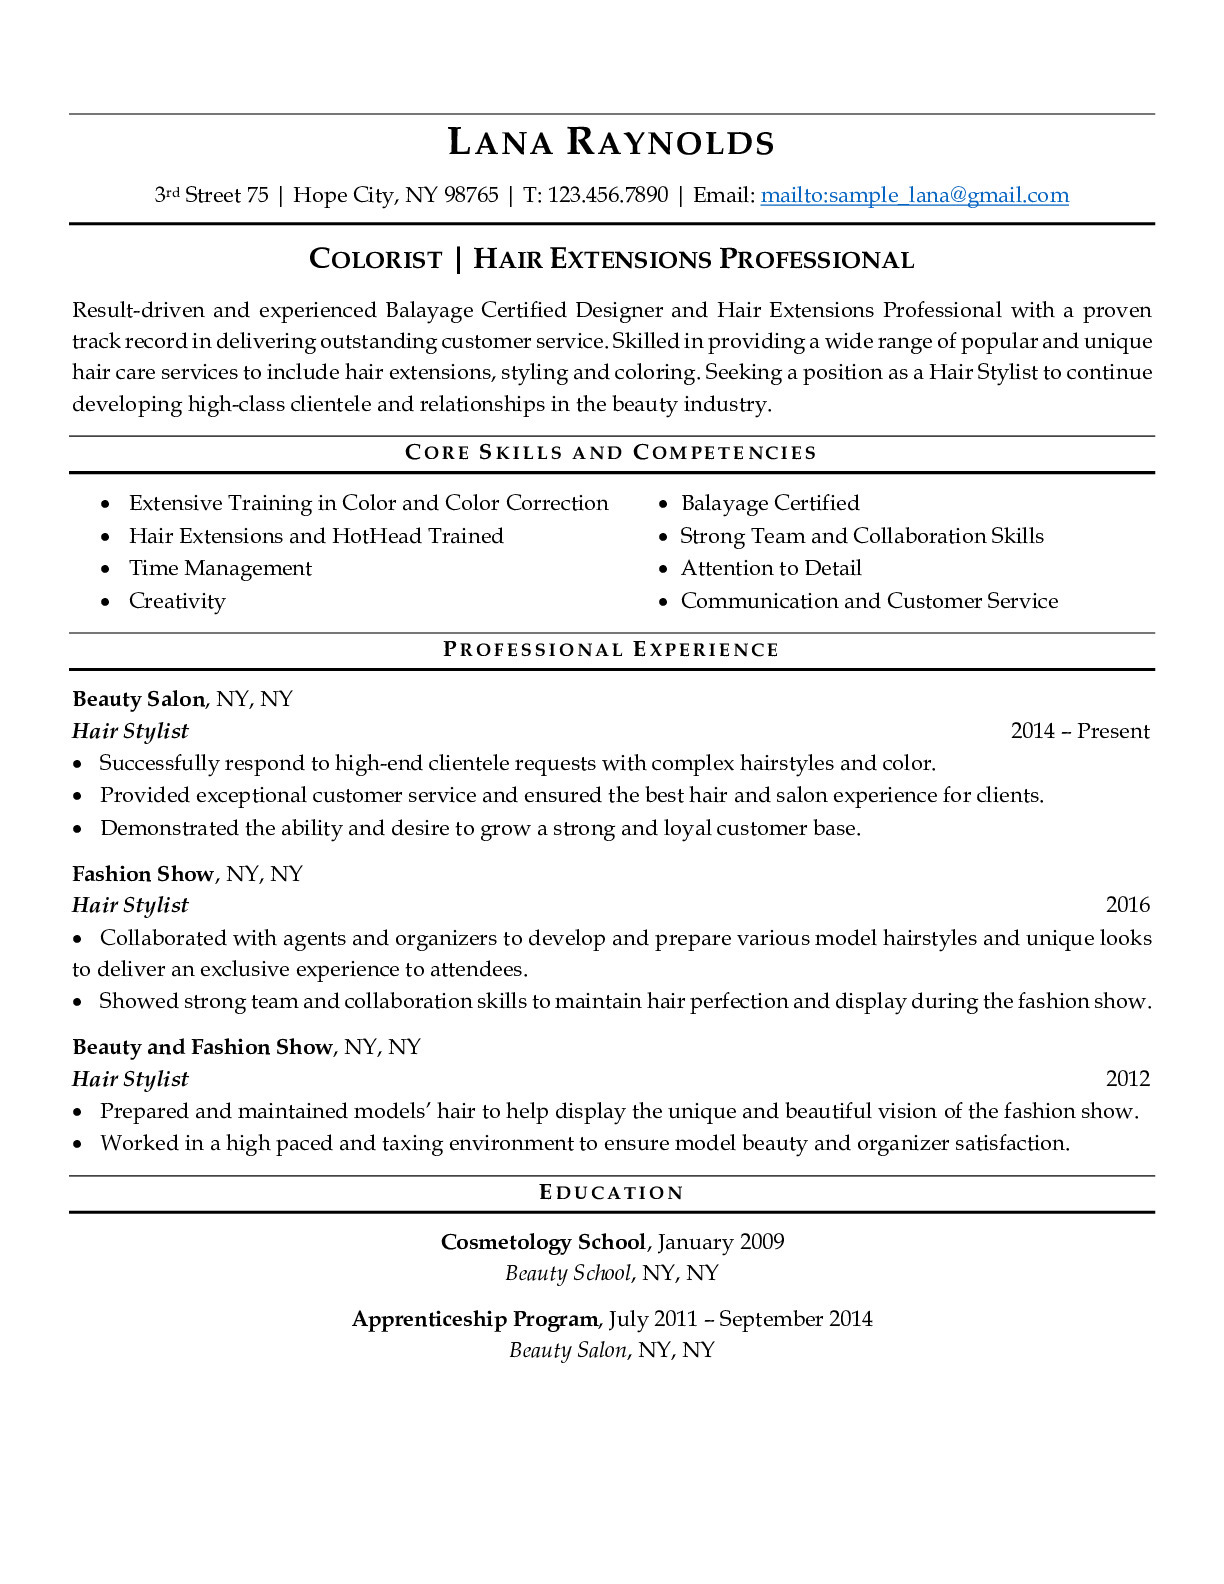 Resume Example for Hair Stylist